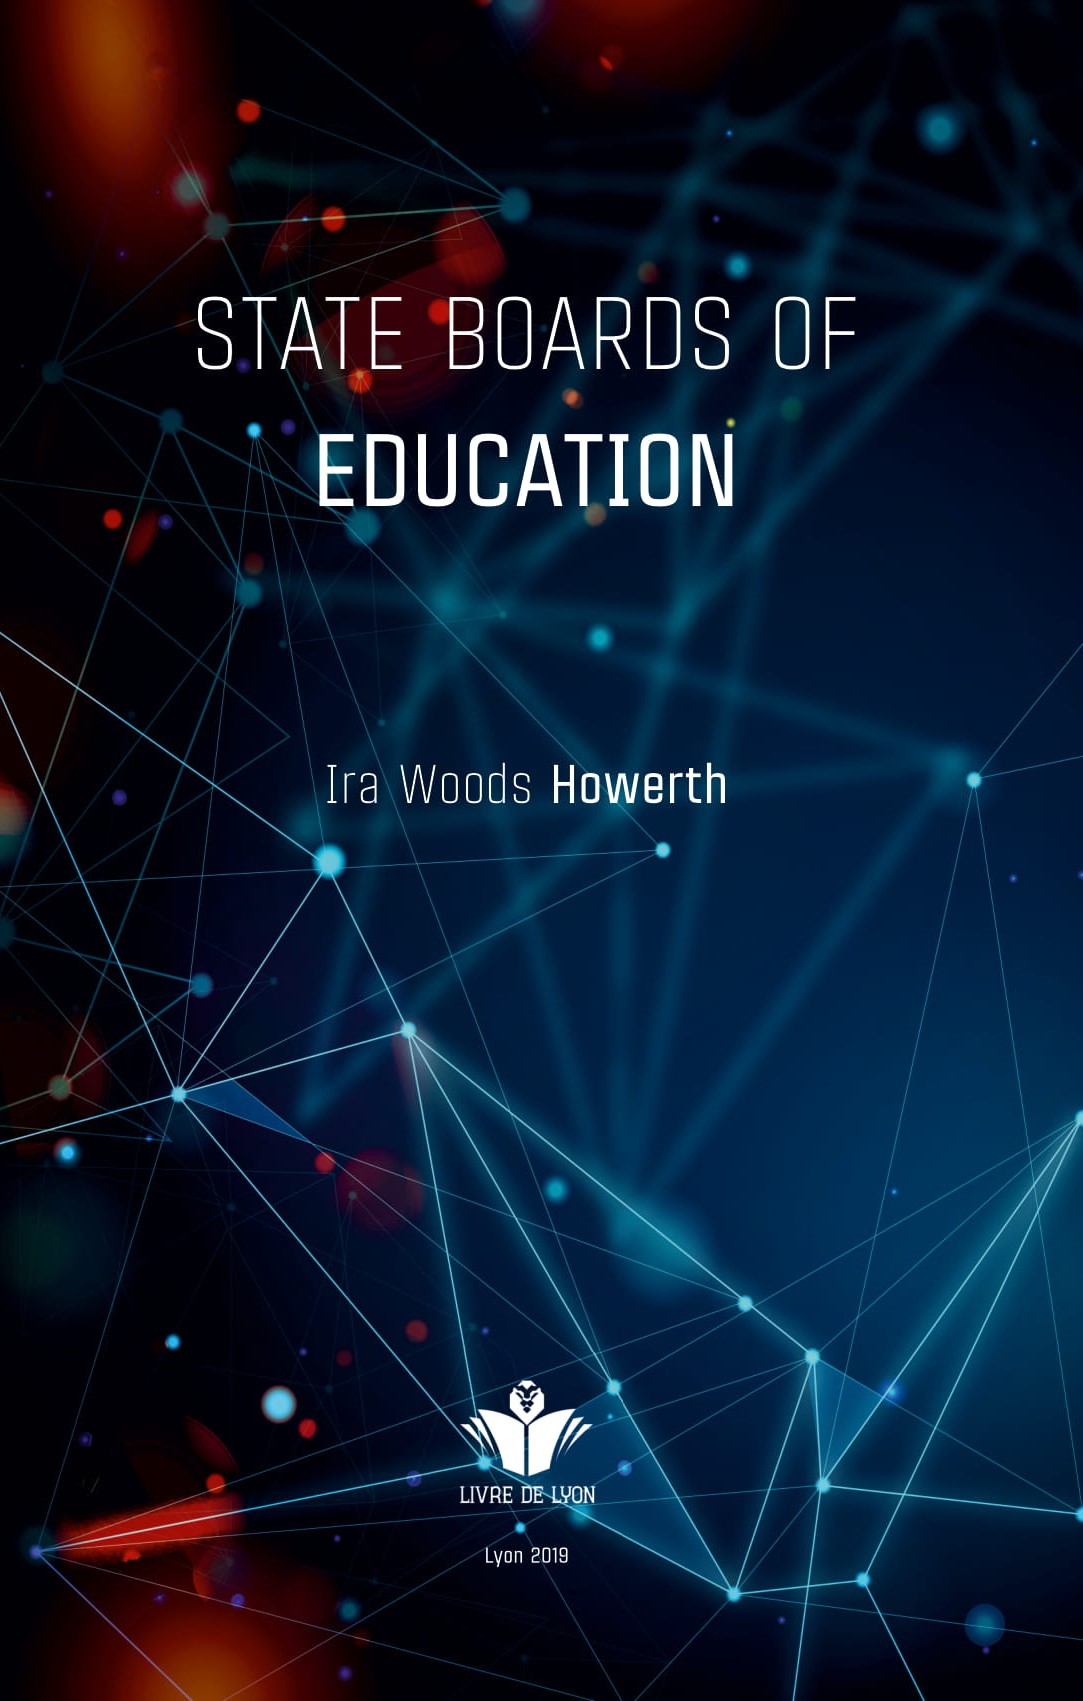 State Boards of Education